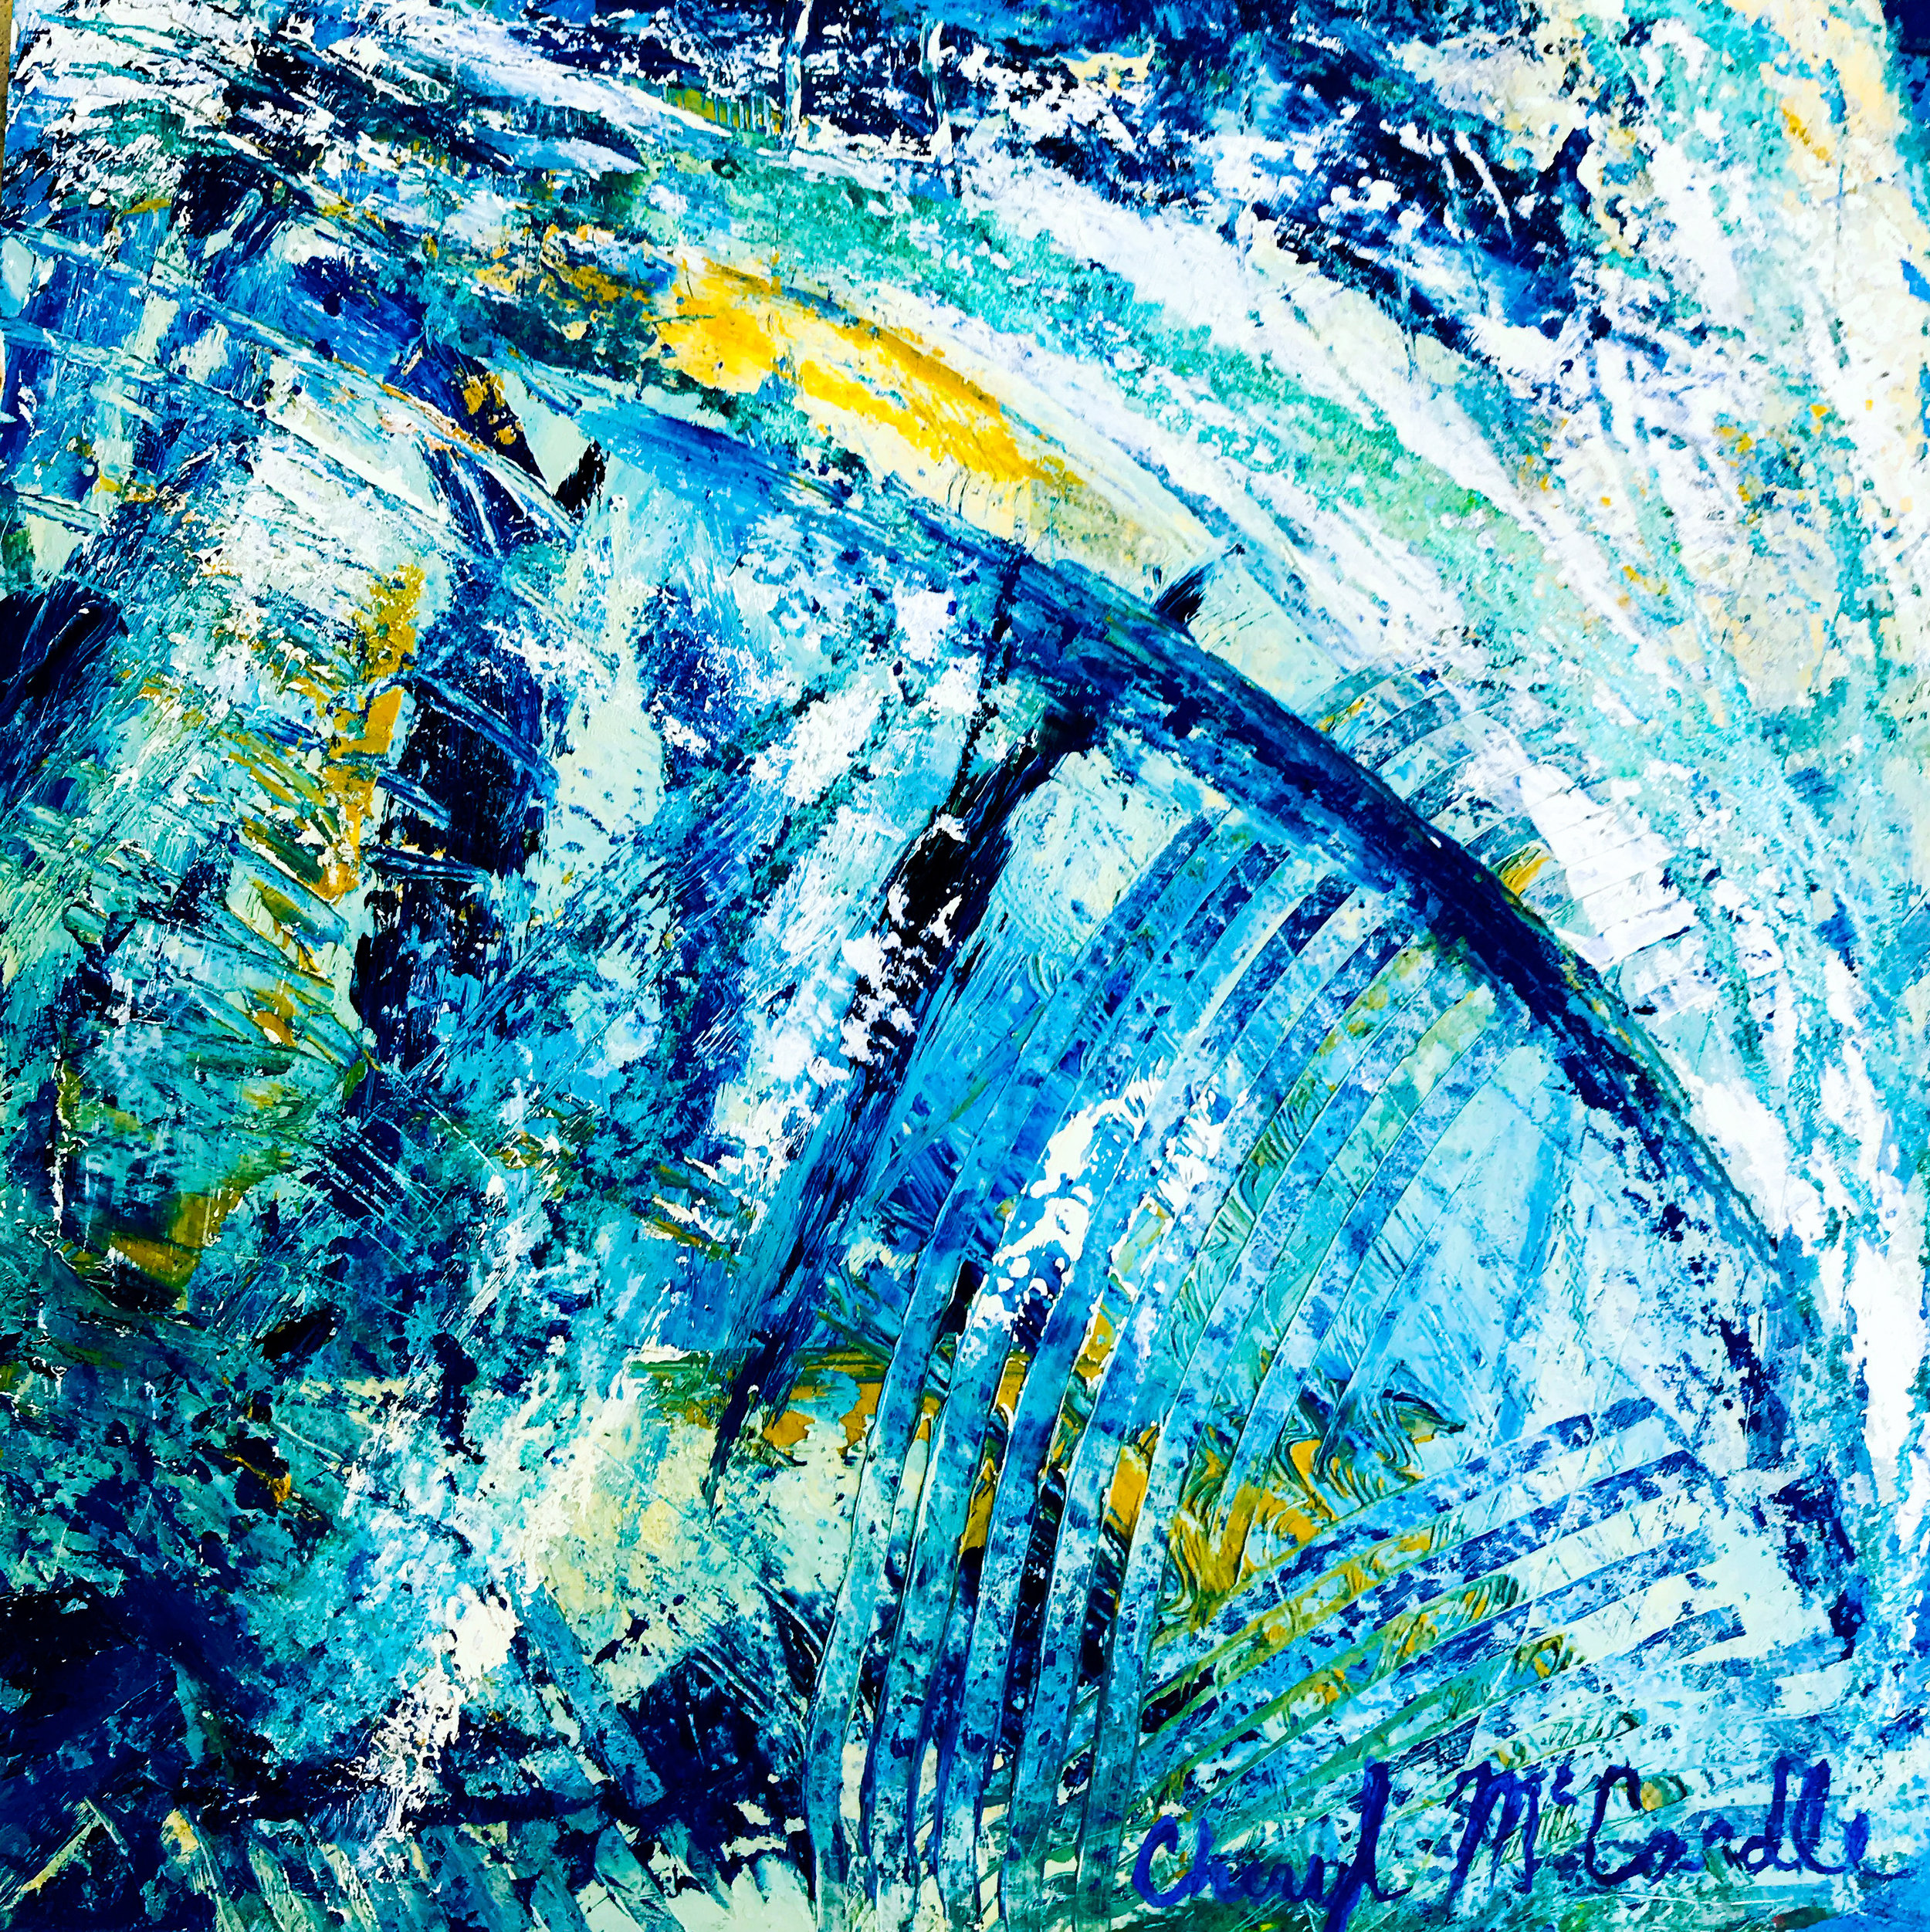 Cheryl Michaela McCardle - Image: UndertowCheryl has been painting and sculpting since 1990. Her art is expressionistic and inspired by nature. She works intuitively and uses many layers of paint to achieve rich textures.